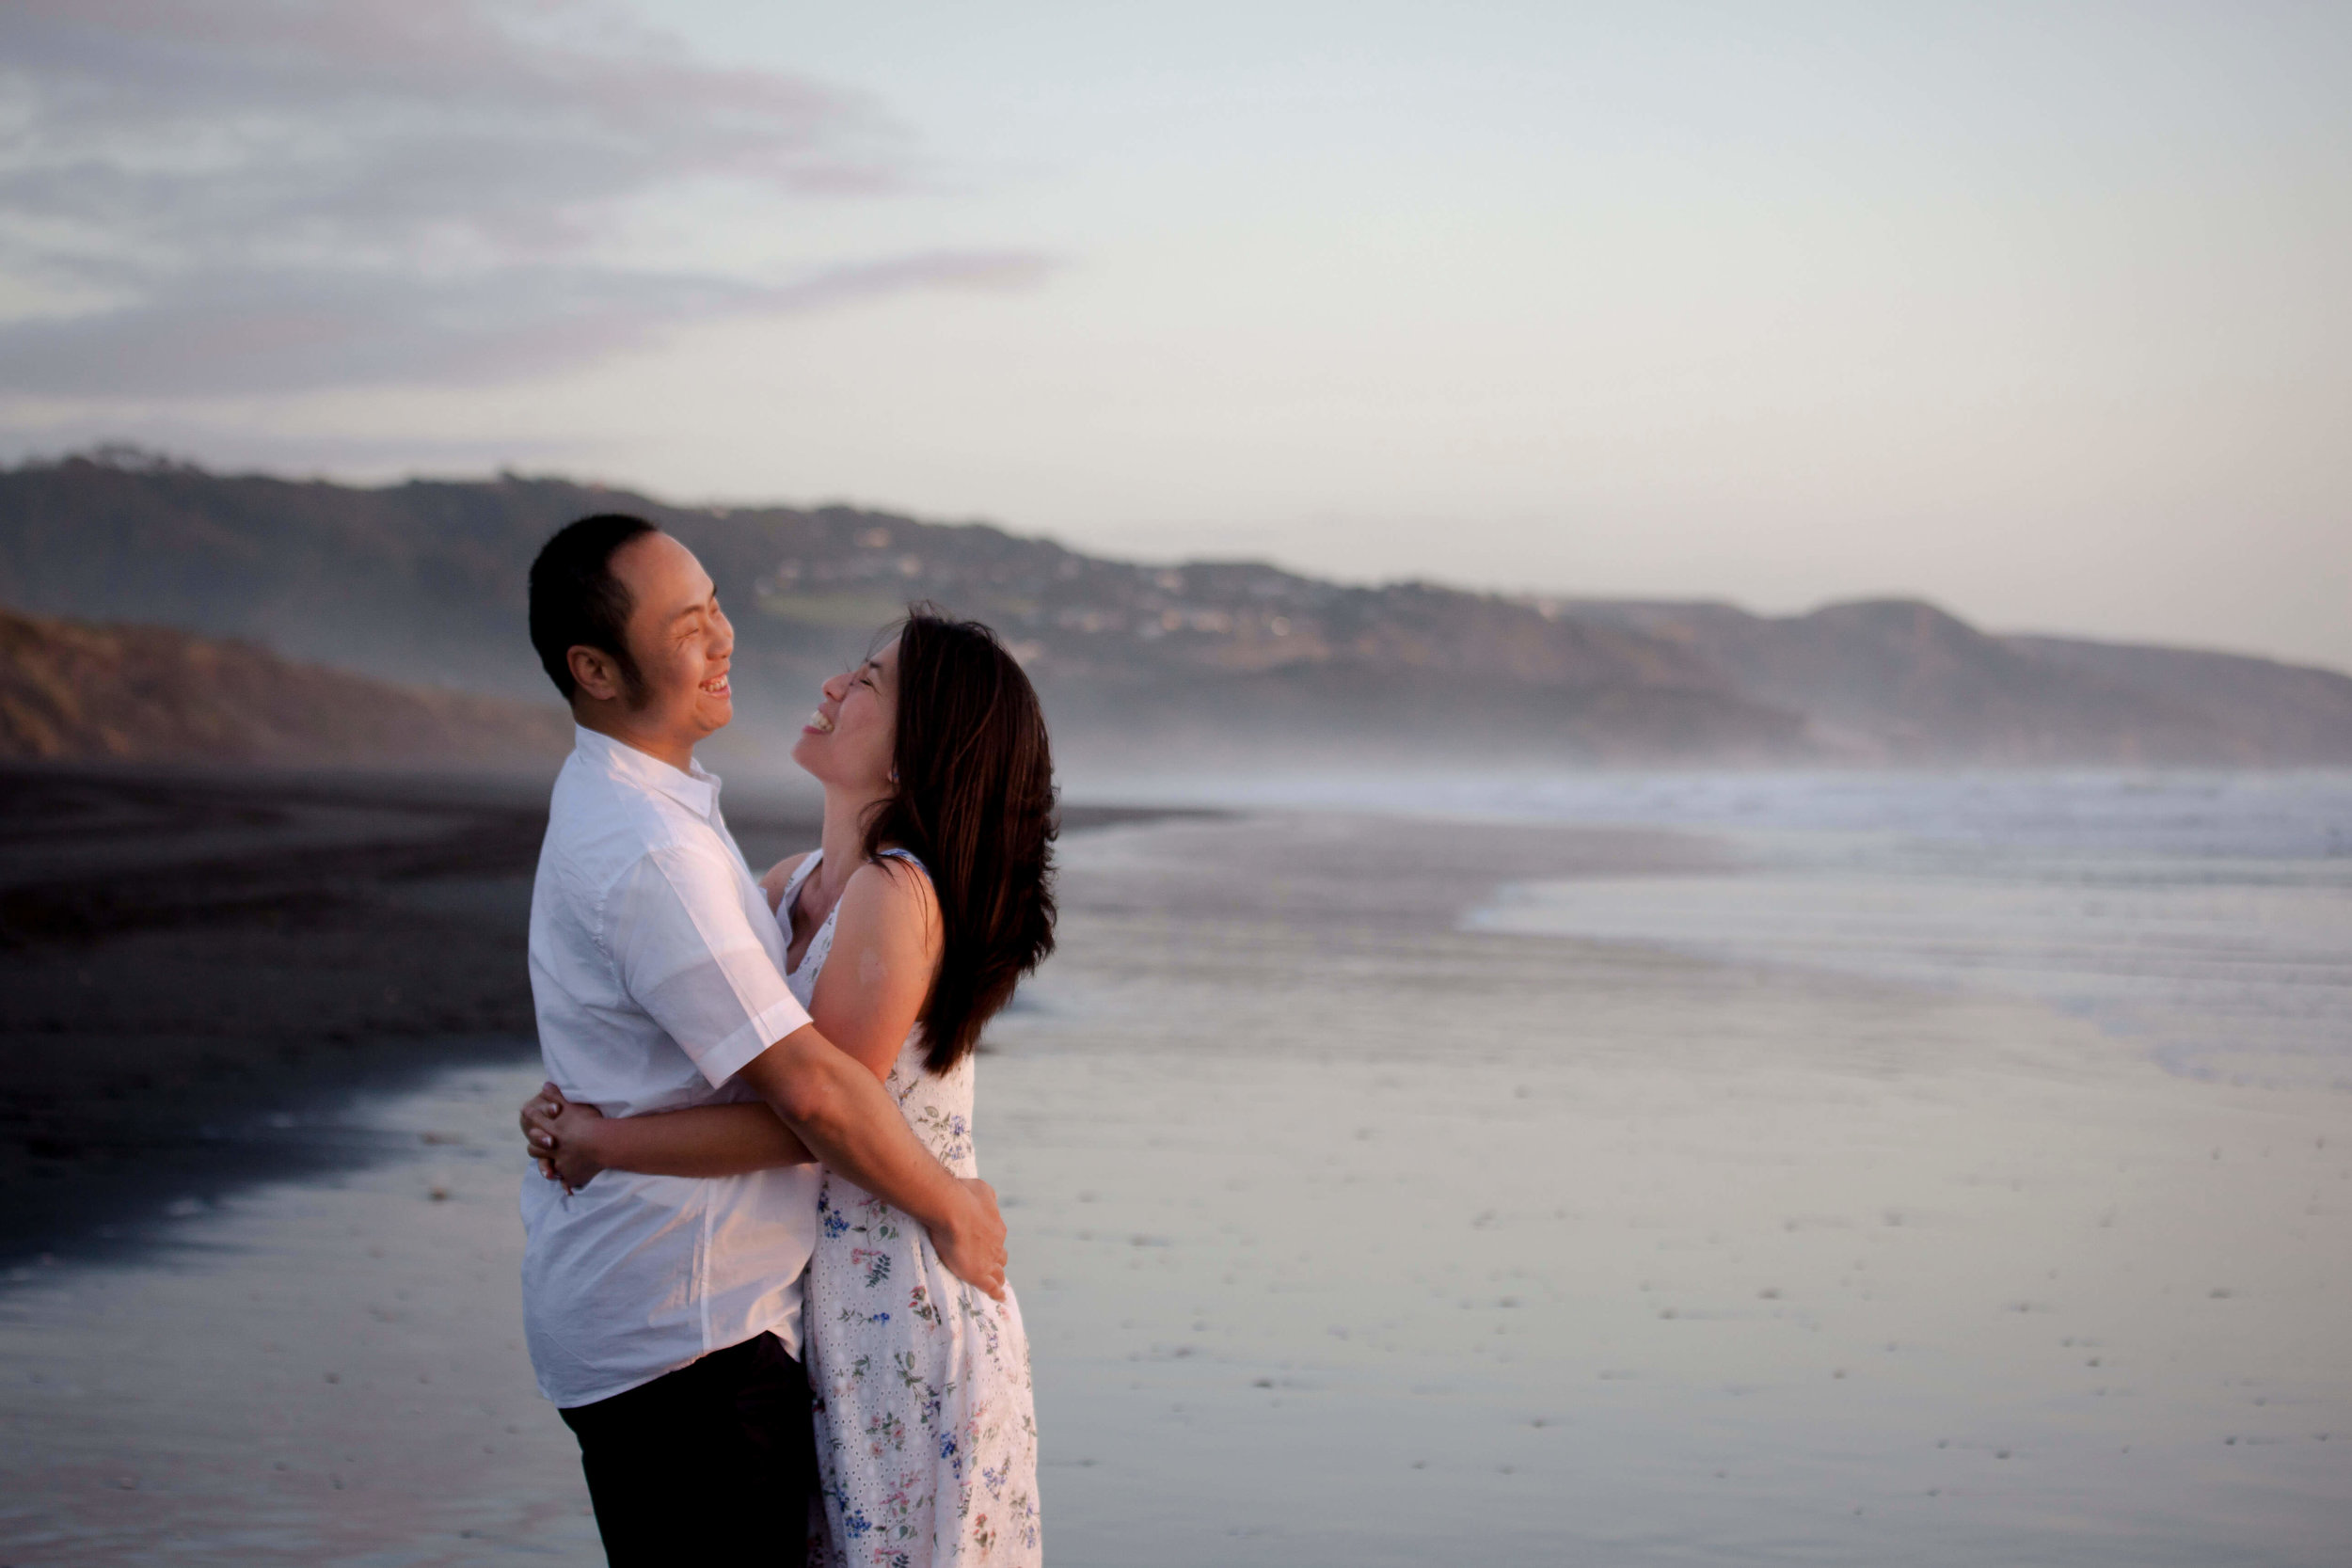 sunset-engagement-on-beach.jpg